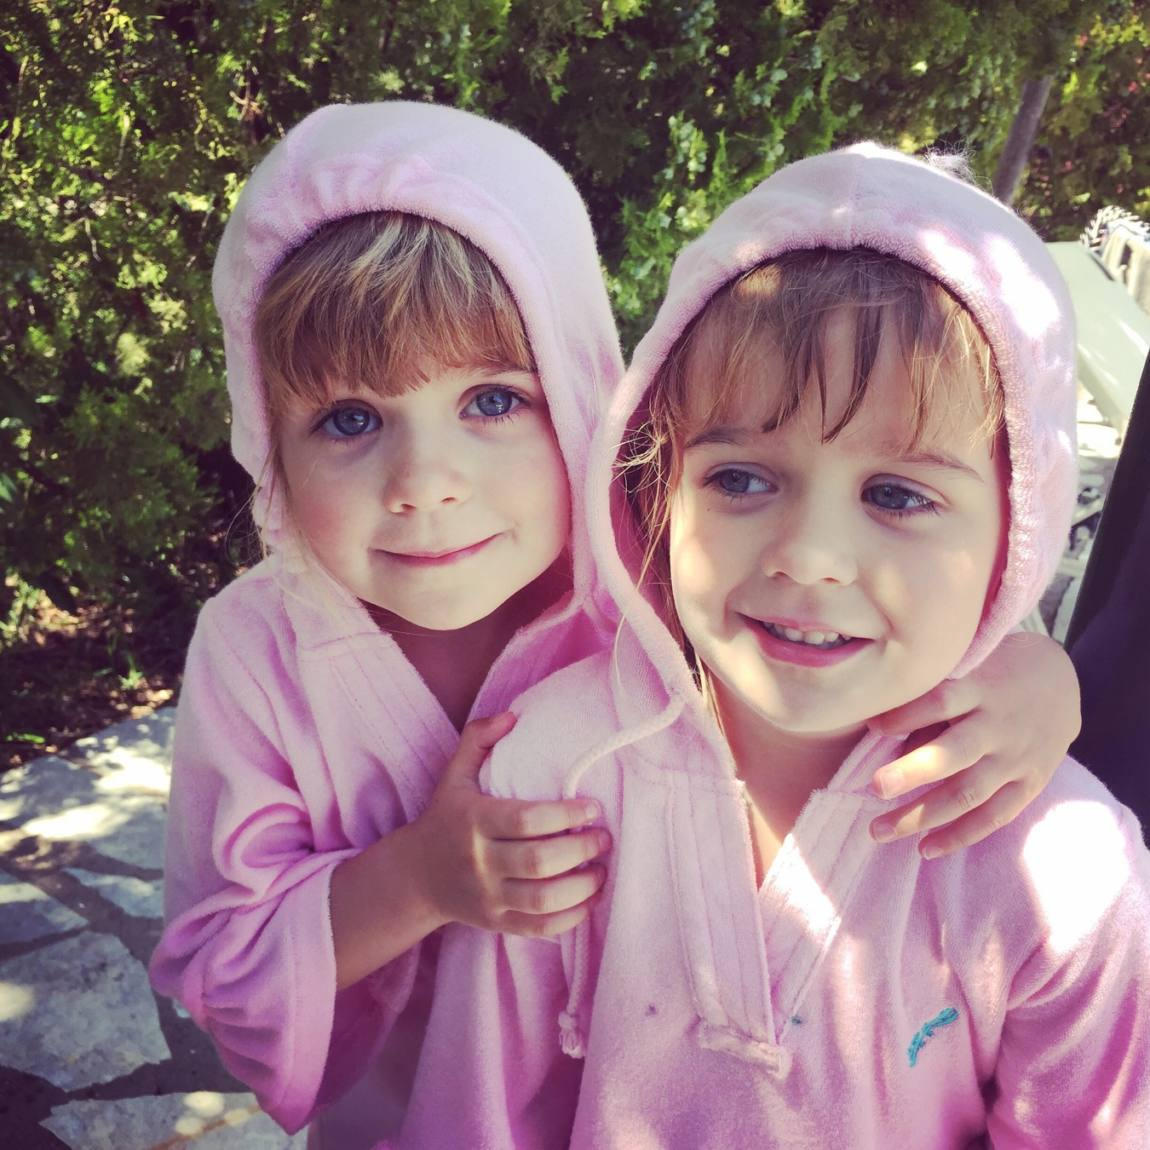 b3cb94fede4b4 After Swim Cover up for Kids from Platypus Australia - Mini ...